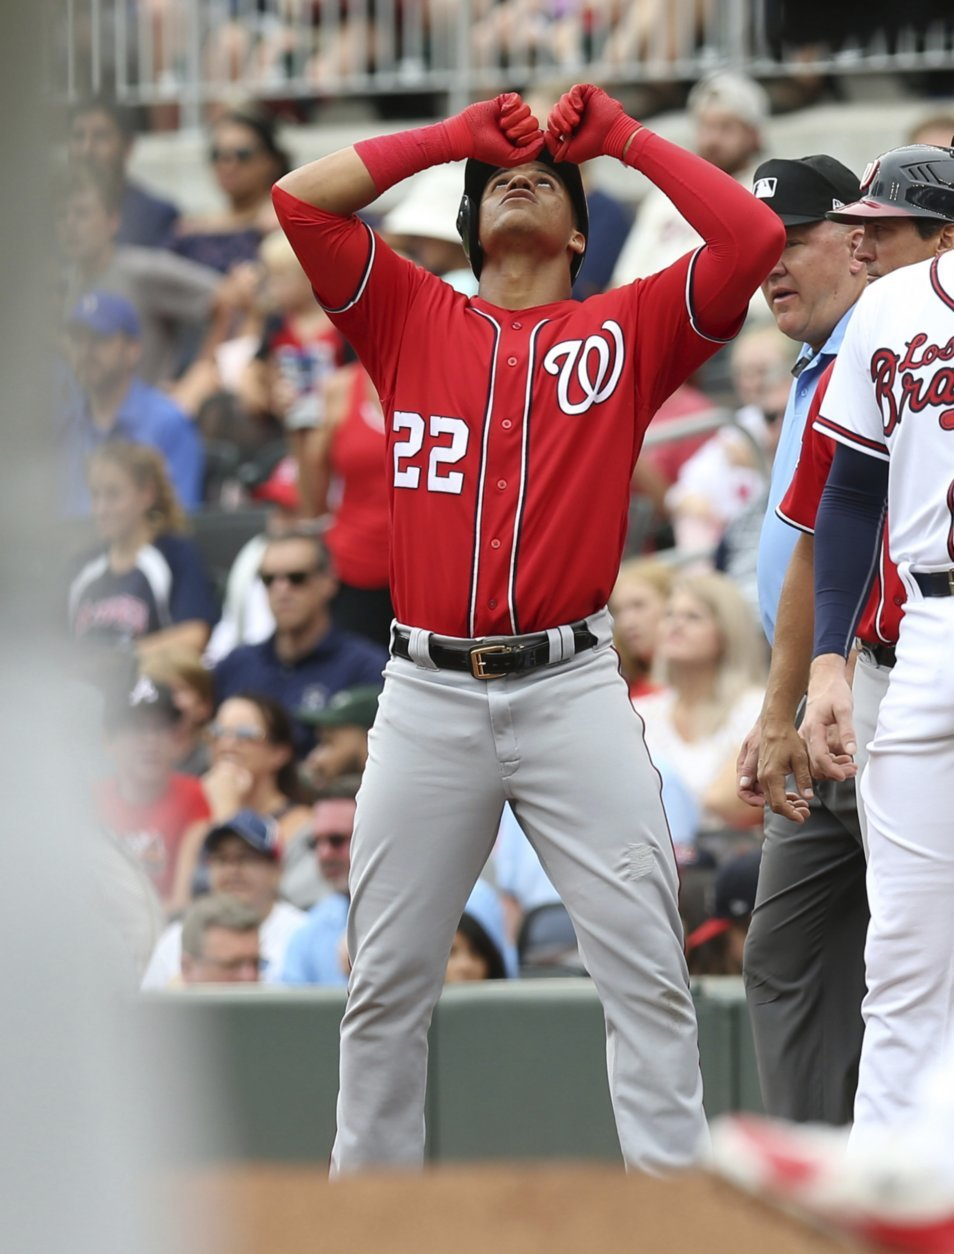 Washington Nationals' Juan Soto (22) reacts after a hit against the Atlanta Braves in the first inning of a baseball game Sunday, Sept. 16, 2018, in Atlanta. (AP Photo/Tami Chappell)